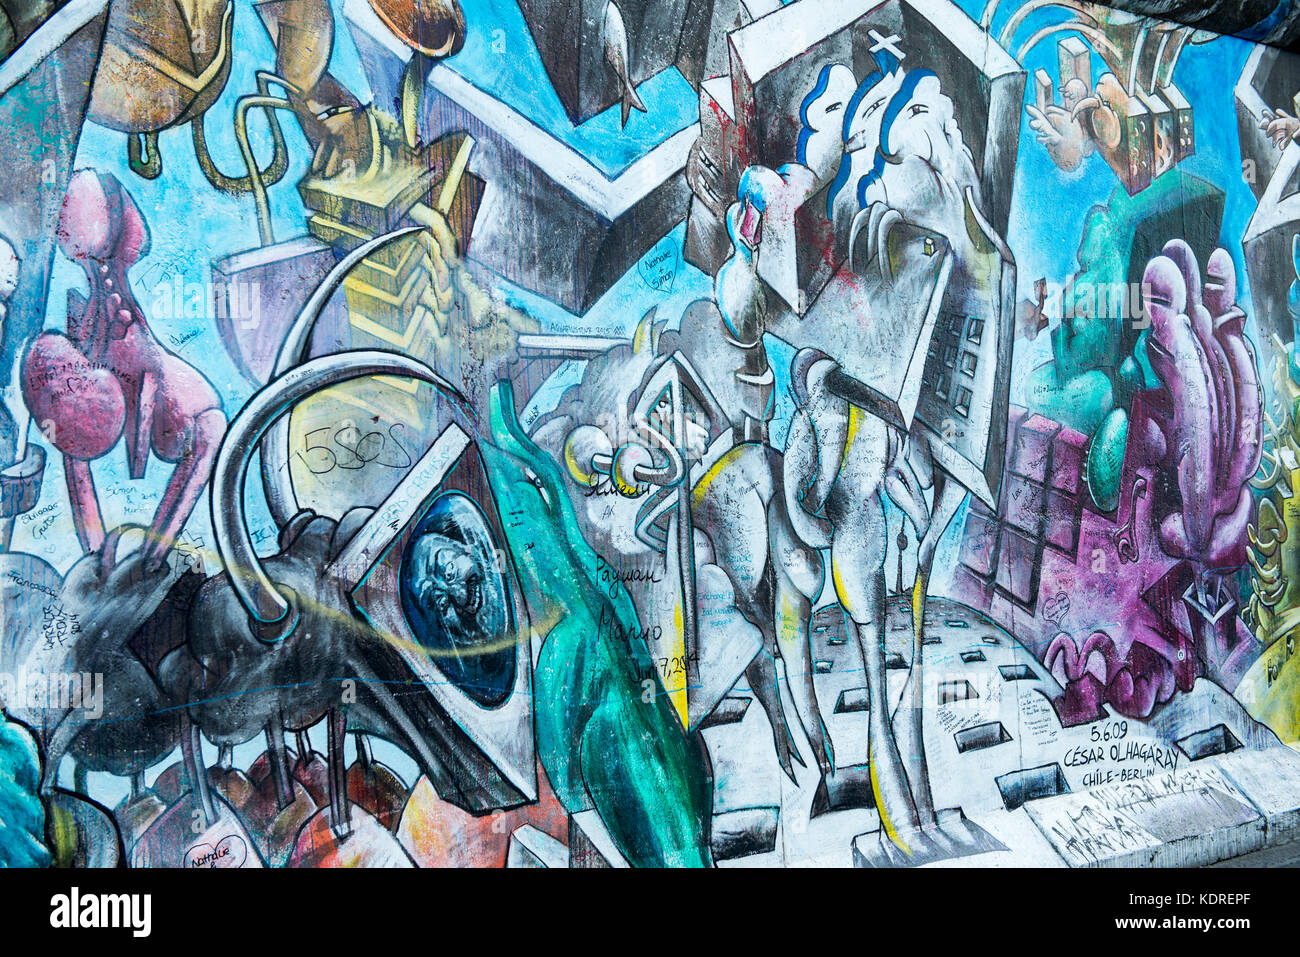 Urban artwork on the Berlin wall at the East Side Gallery, Berlin, Germany - Stock Image